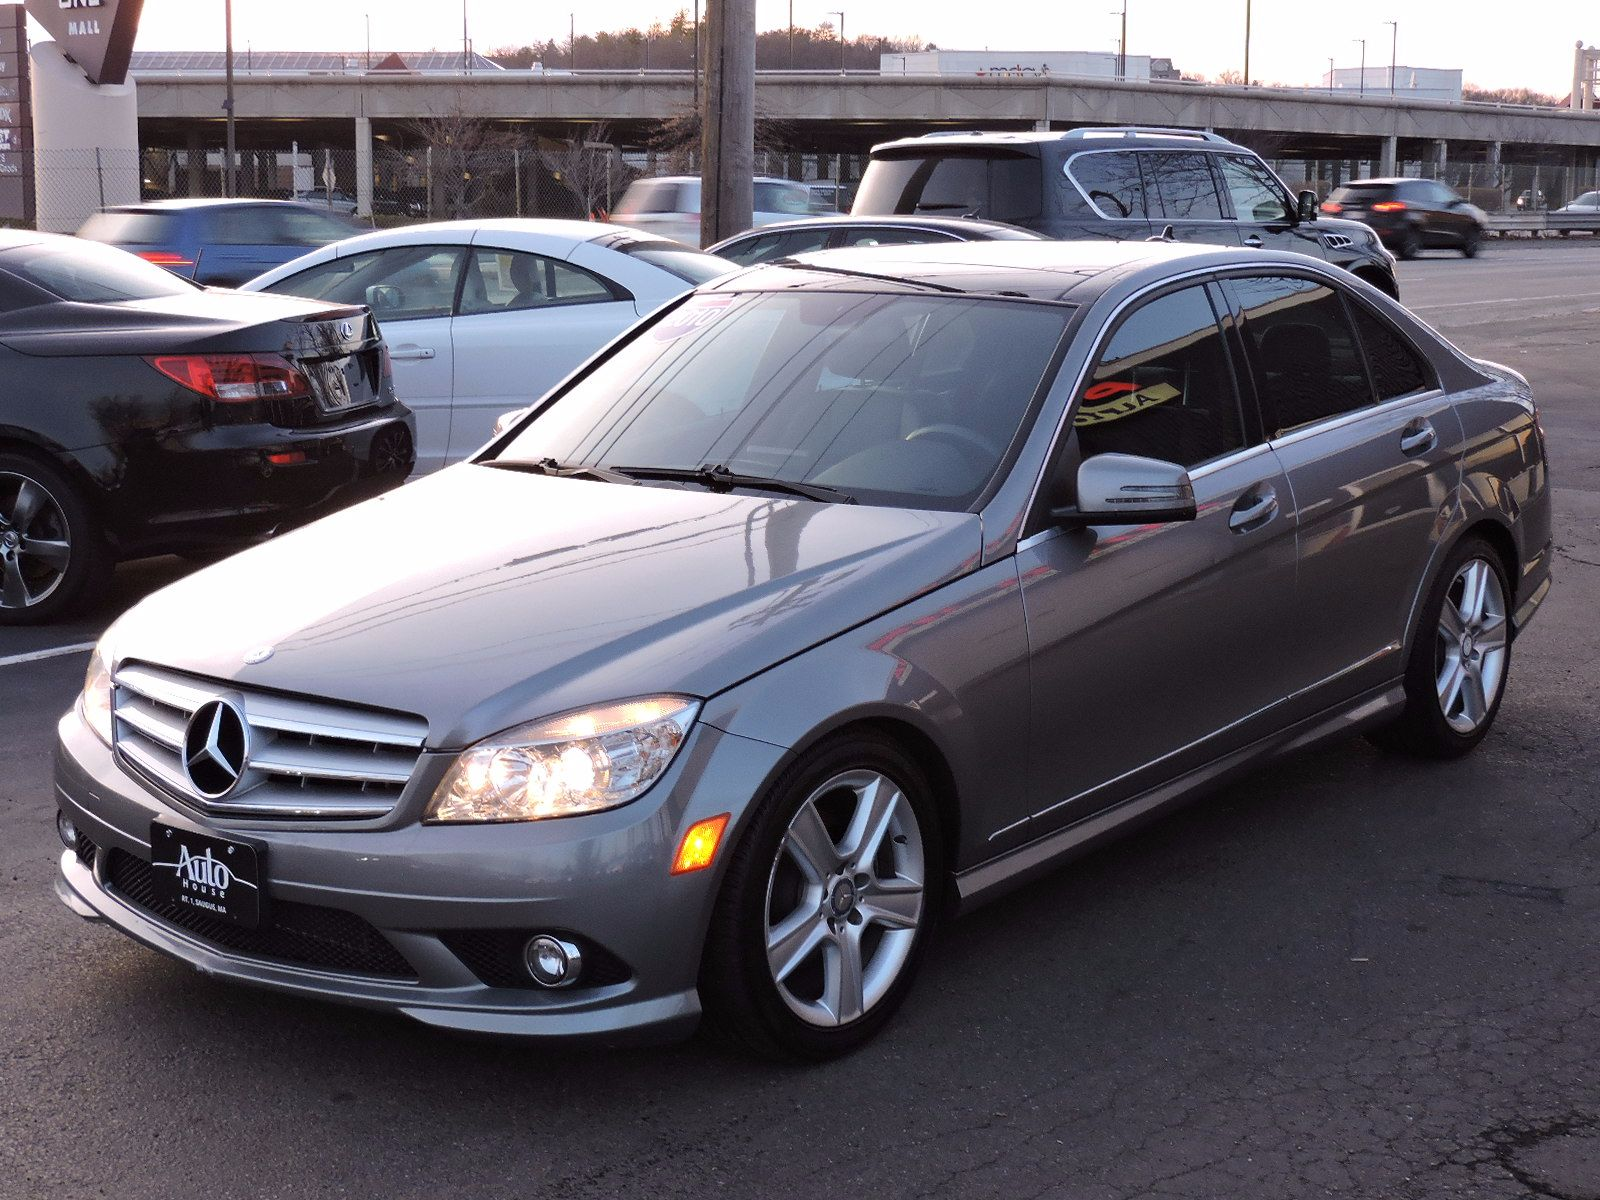 Used 2010 mercedes benz c class c300 sport at auto house for Mercedes benz c300 4matic 2010 price